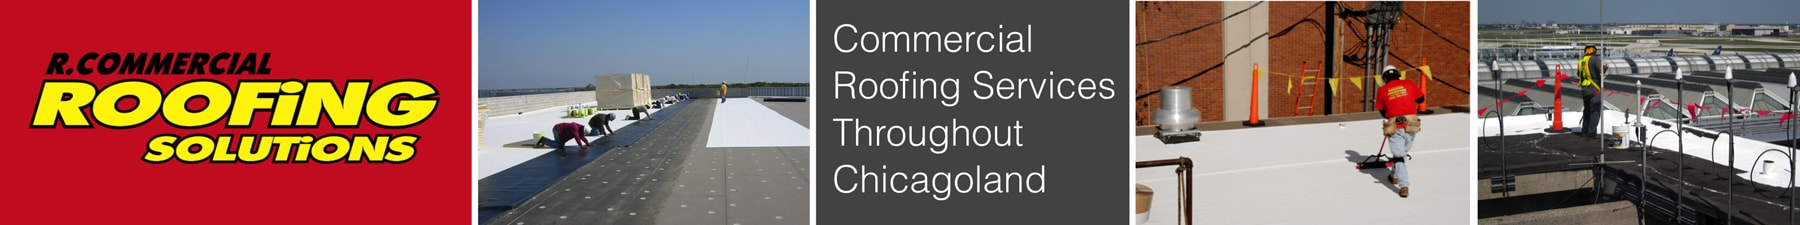 National Roofing Services